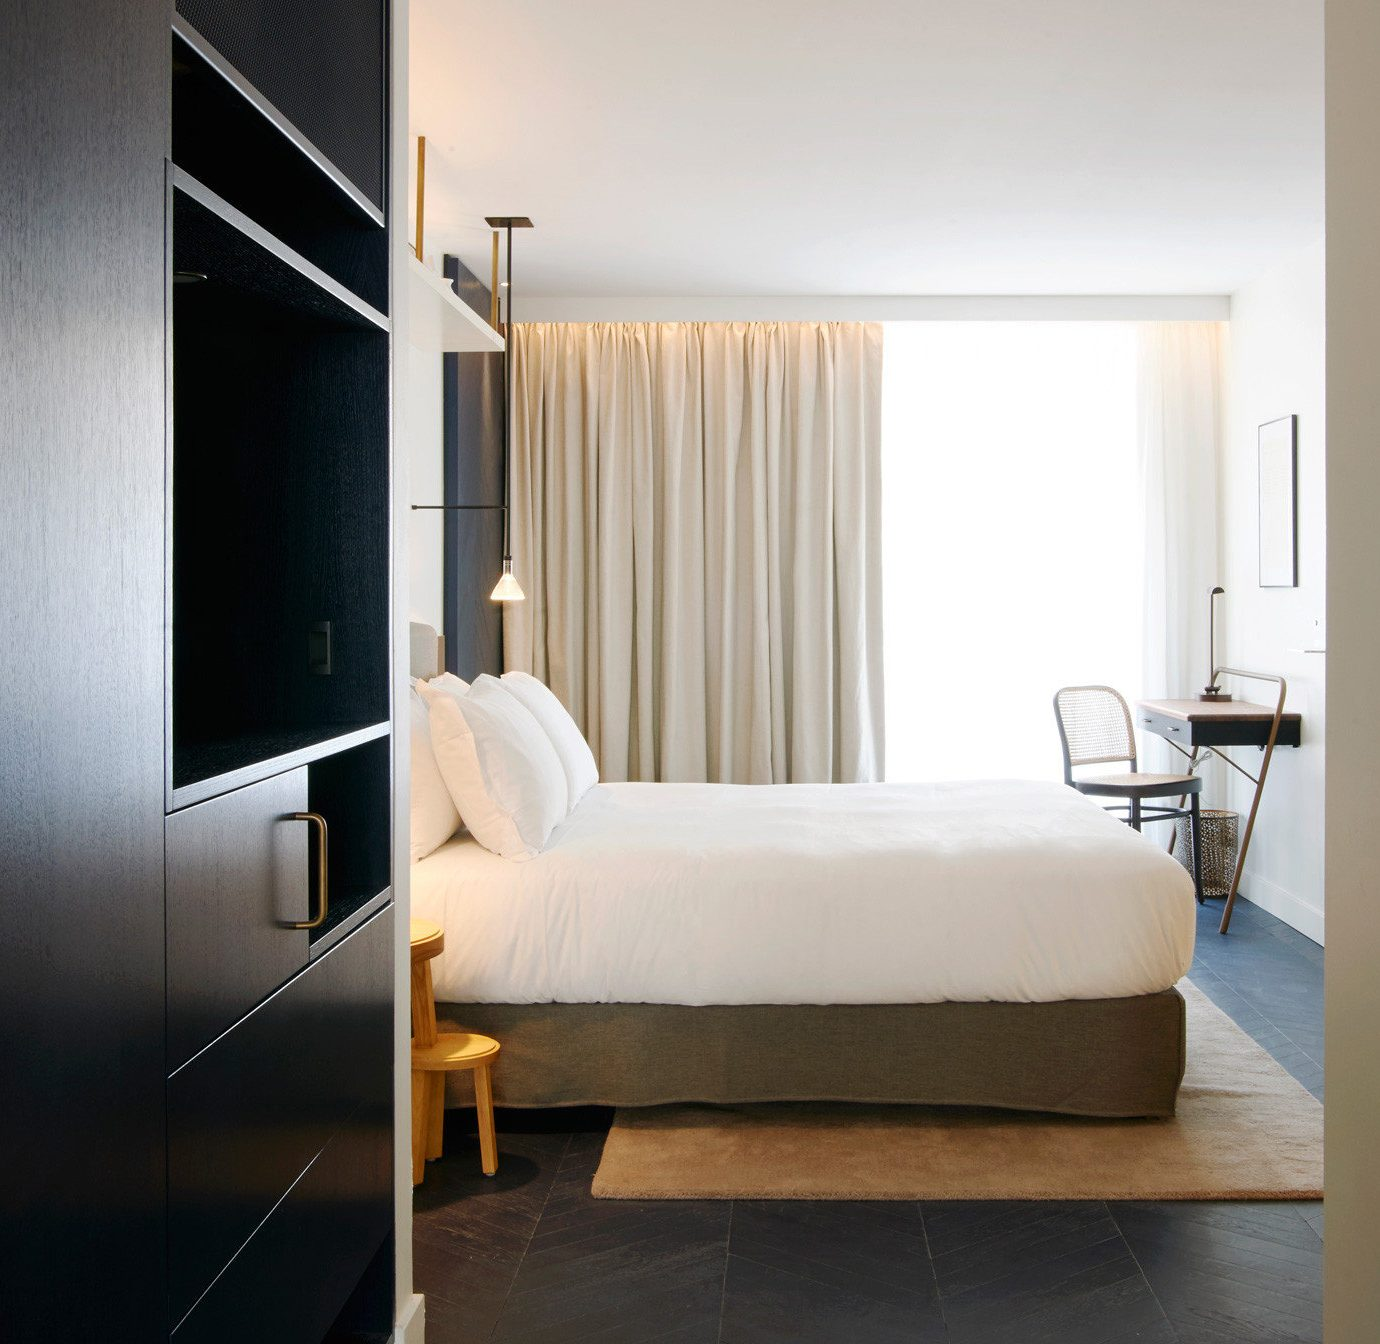 Hotels property Bedroom house home living room Suite